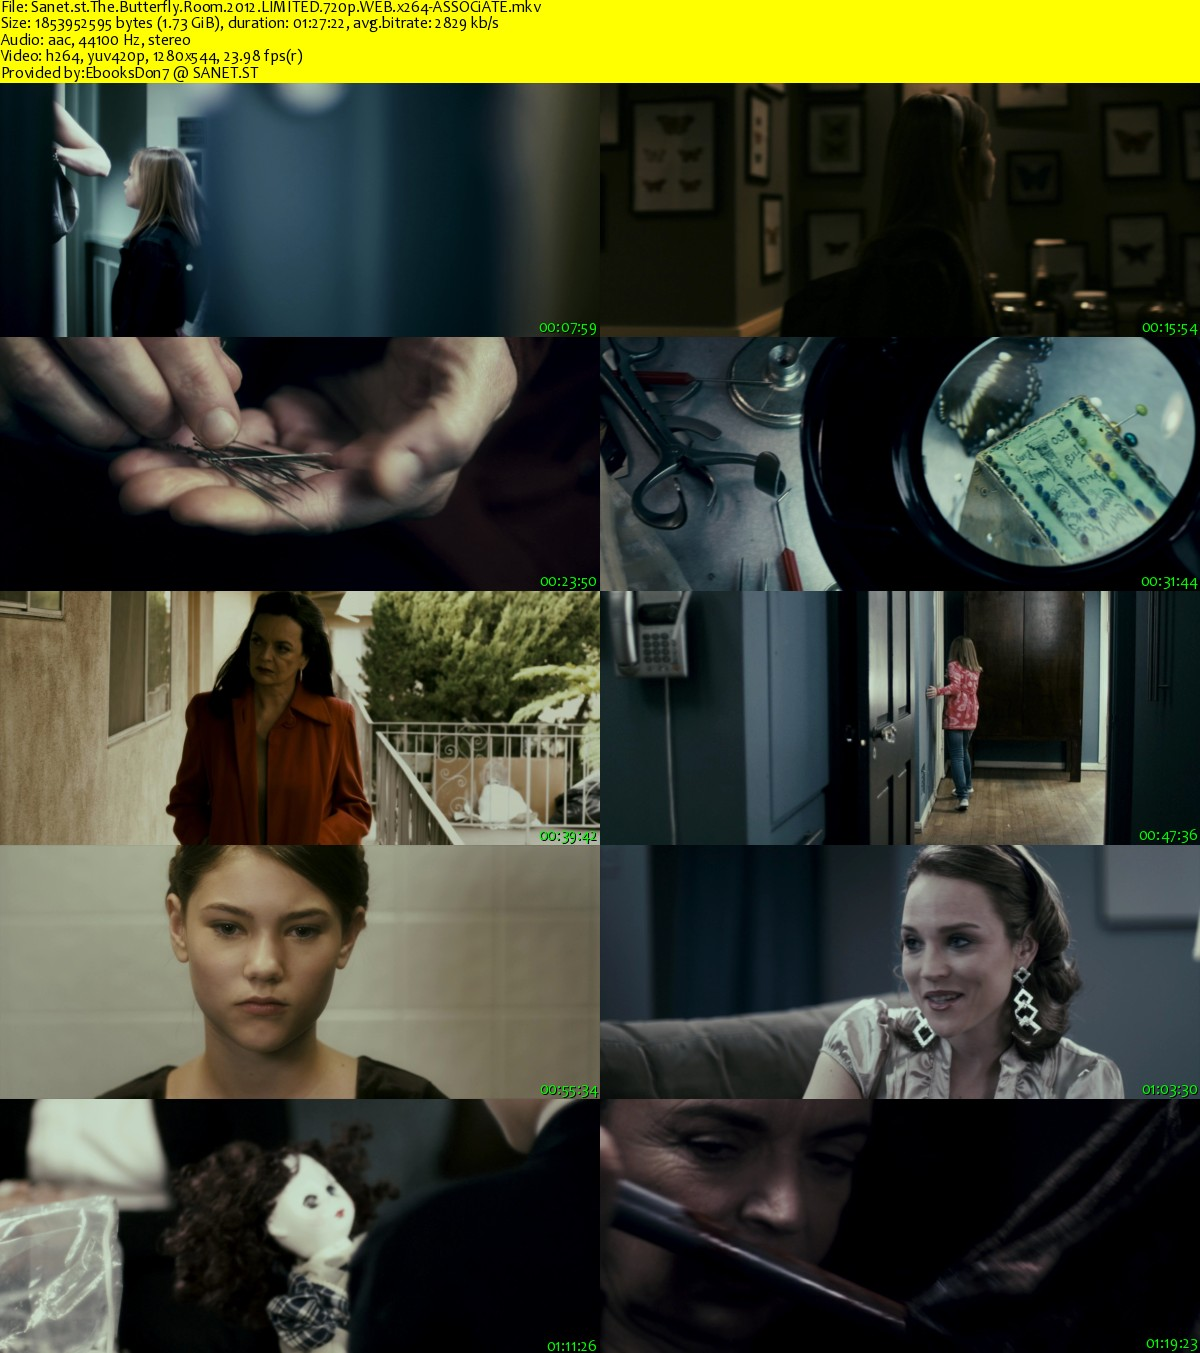 Download The Butterfly Room 2012 LIMITED 720p WEB x264